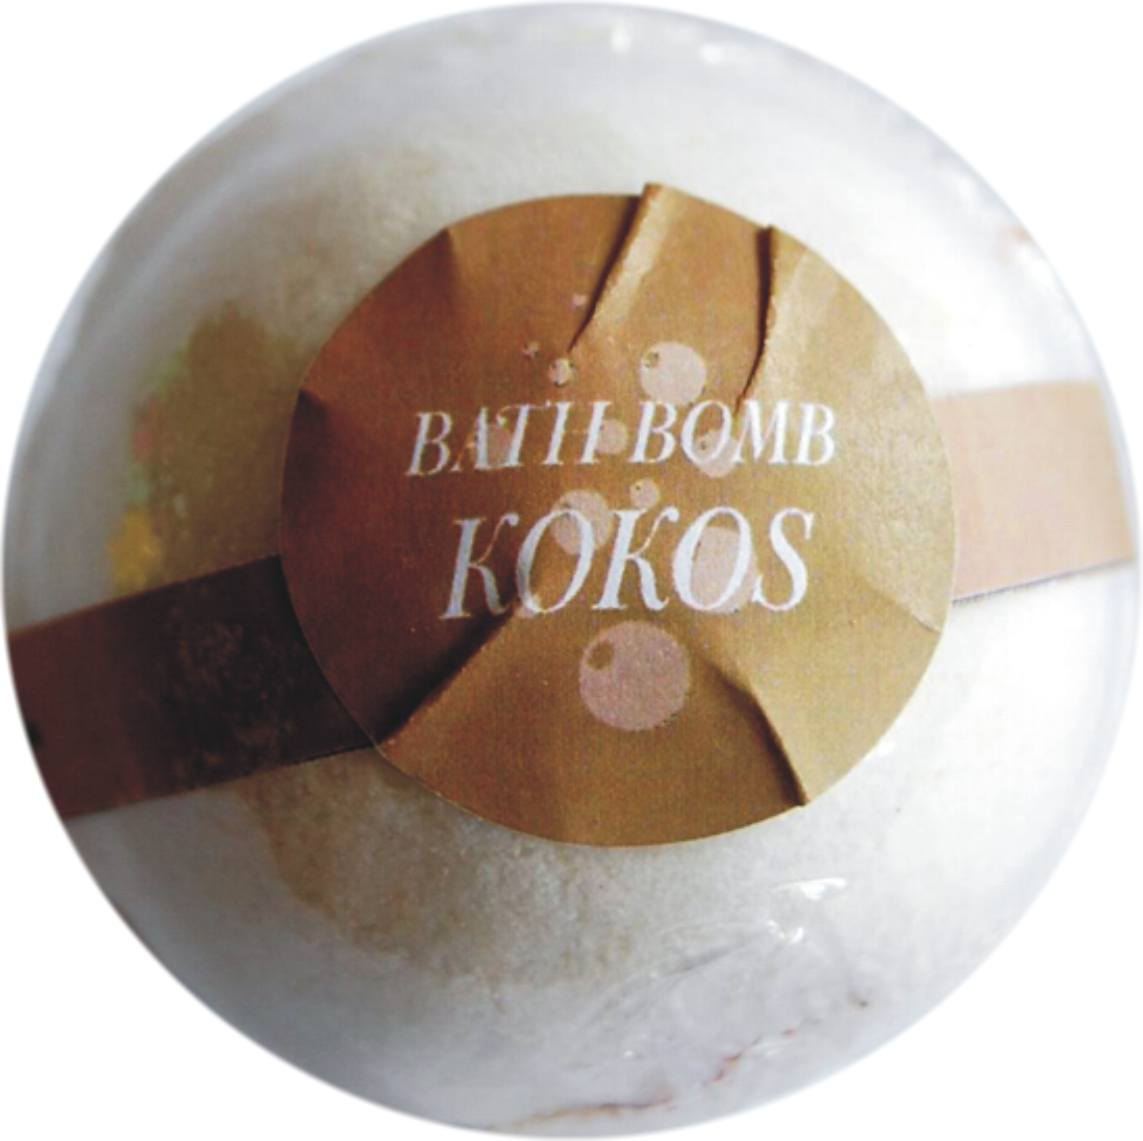 Bath bombs 70 g kokos